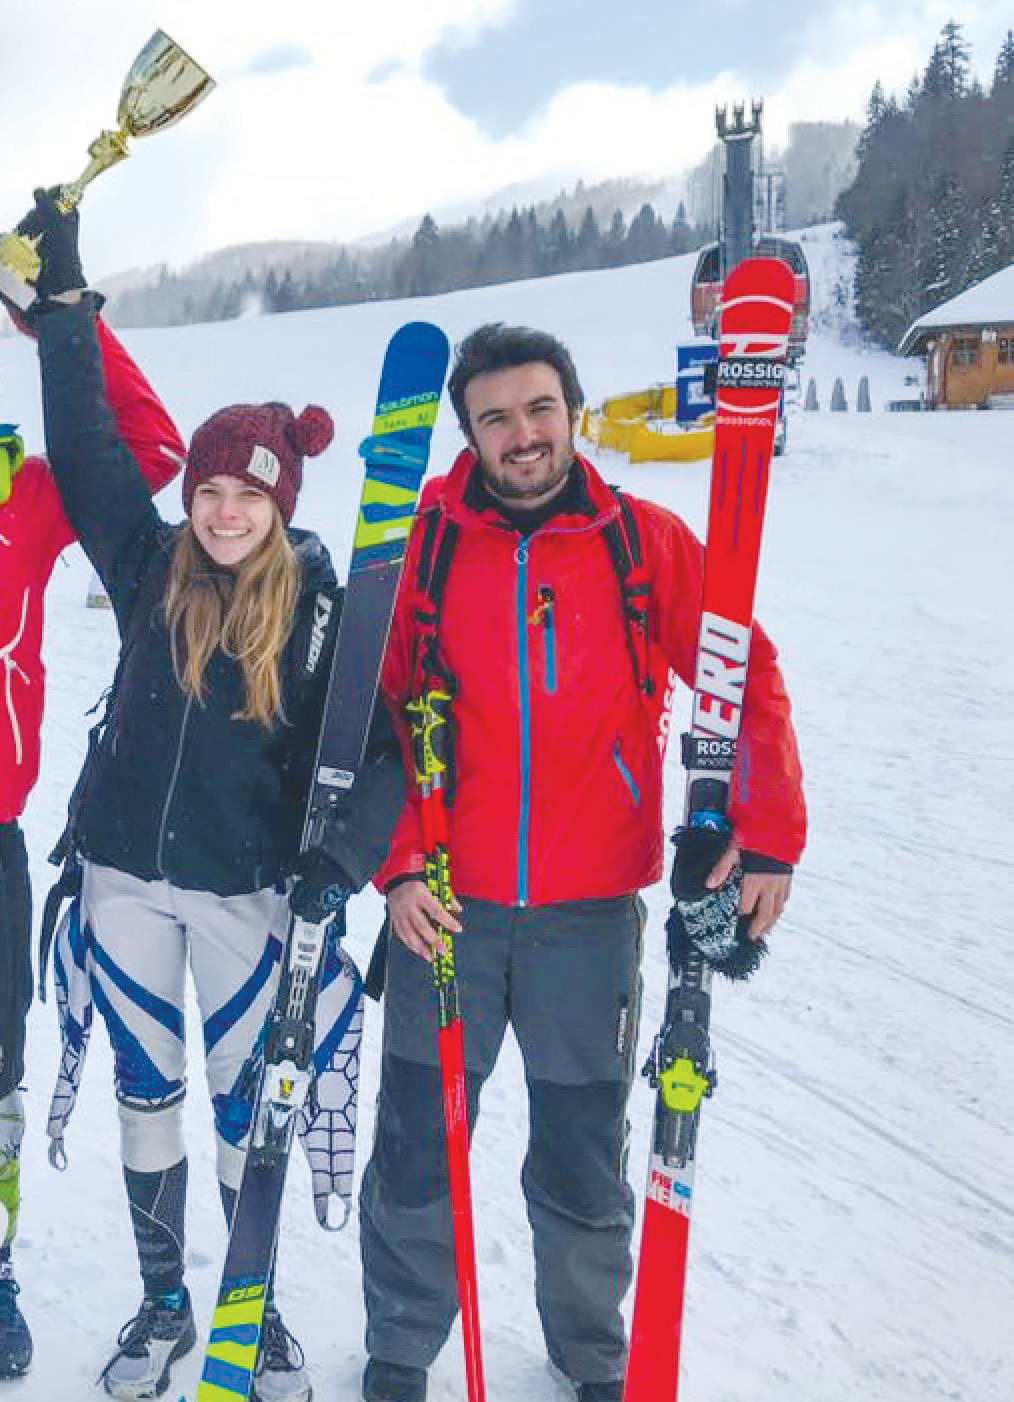 Natacha Mohbat and Allen Behlok, the top female and male skiers in Lebanon, will appear in the Winter Olympics in PyeongChang, South Korea. Natacha has spent much time over the years visiting her grandparents at Eagle Harbor.